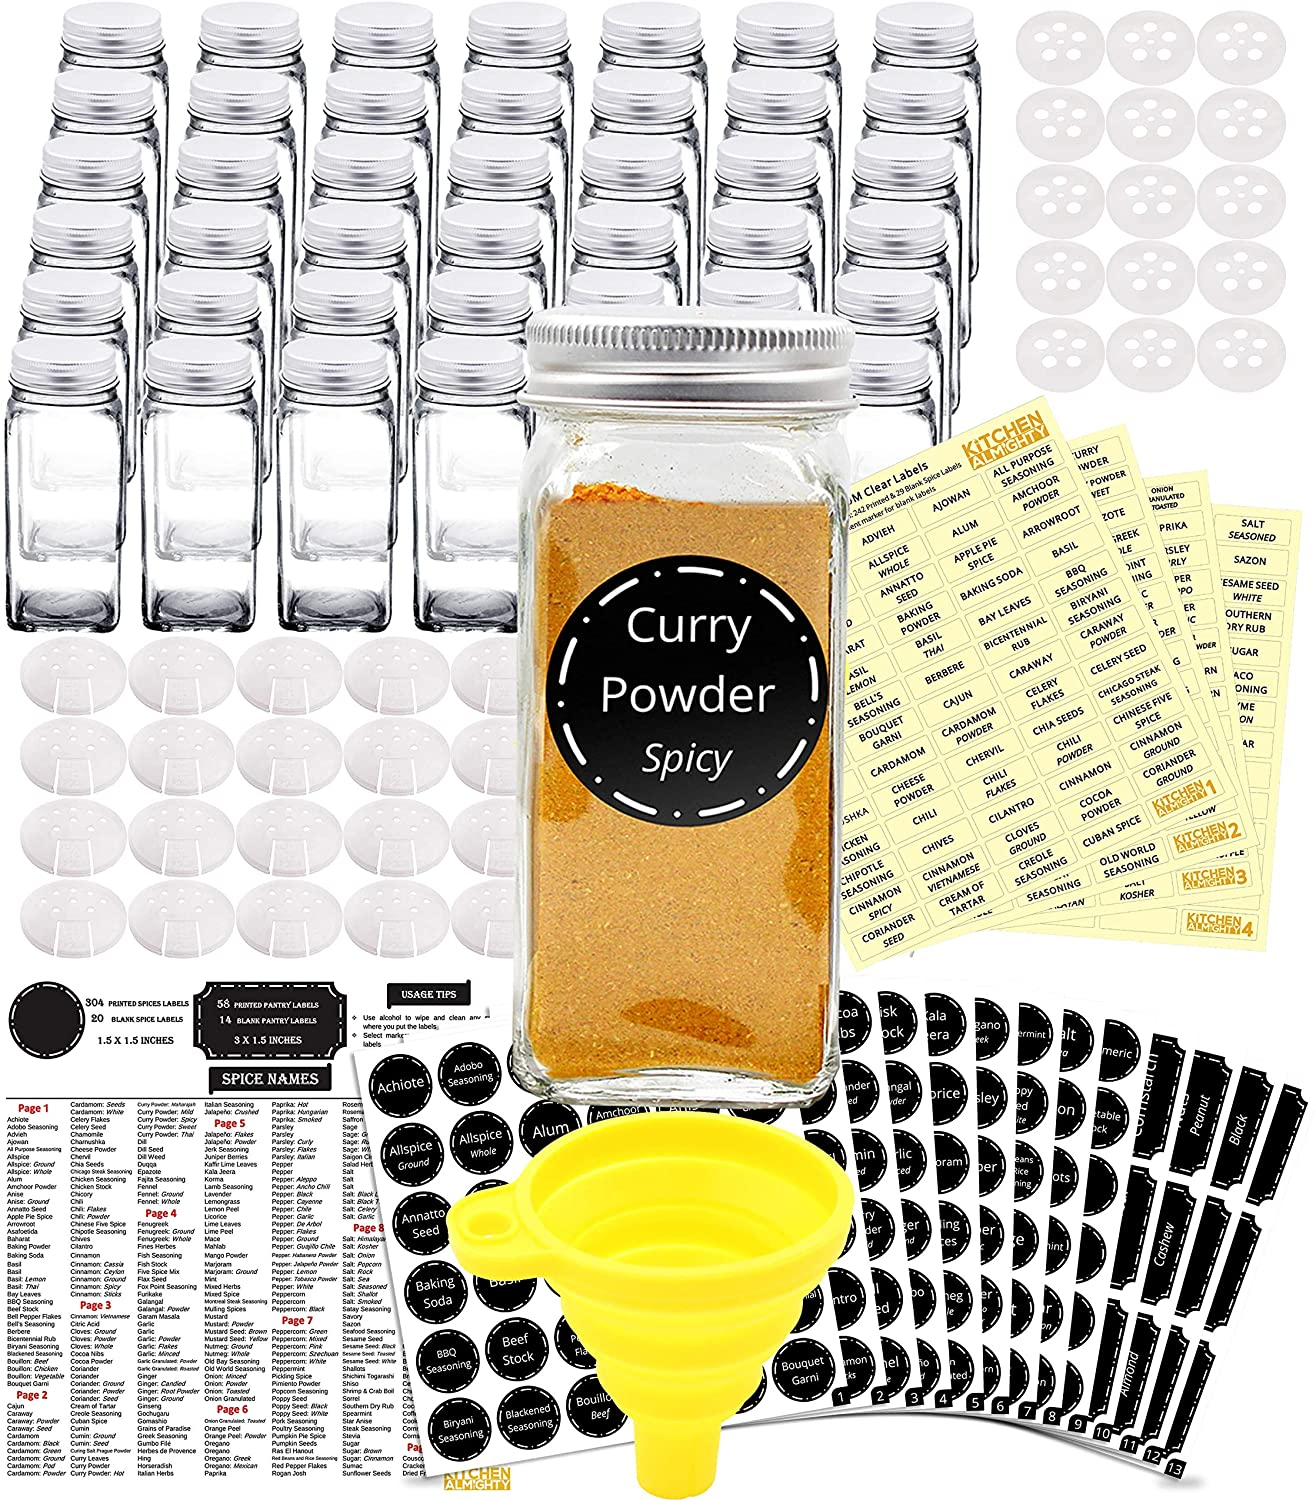 42 Glass Spice Jars Complete Set: 667 Chalkboard & Clear Printed Spice & Pantry Labels - 4 fl Oz Empty Square Bottles w/Pour/Sift & Coarse Shakers & Airtight Cap - Silicone Funnel by KITCHEN ALMIGHTY